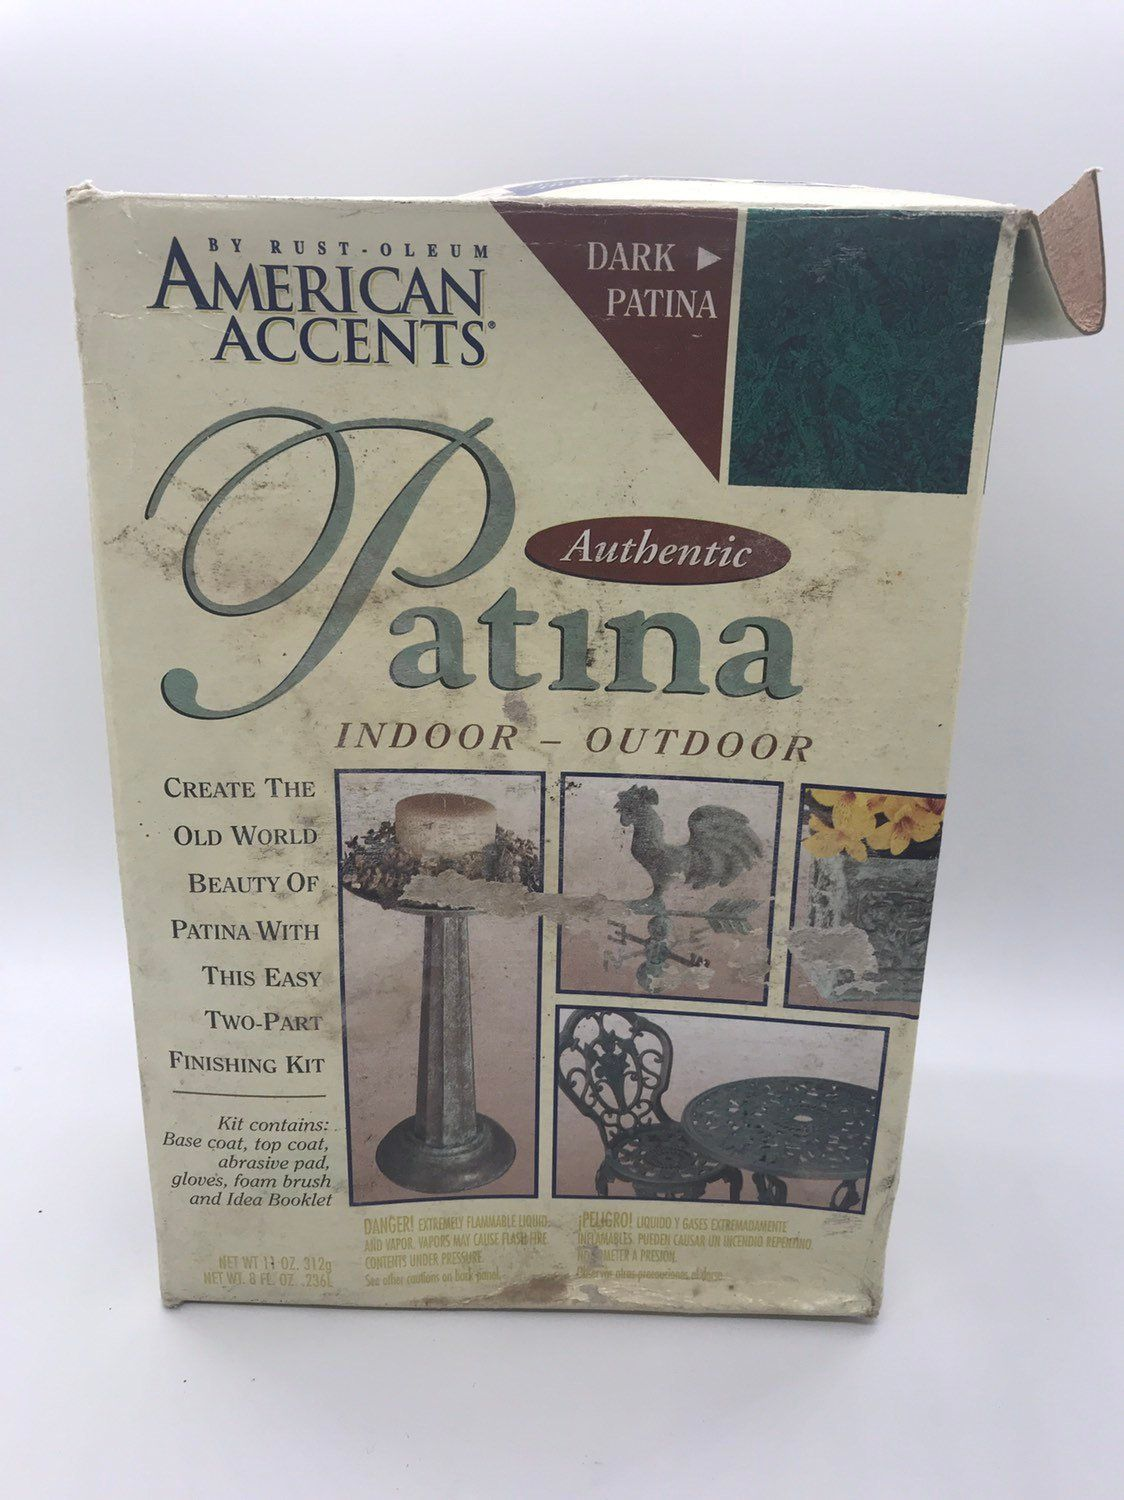 American Accents Authentic Patina Indoor Outdoor Kit Home Decor Finish Outdoor Kit Kit Home Indoor